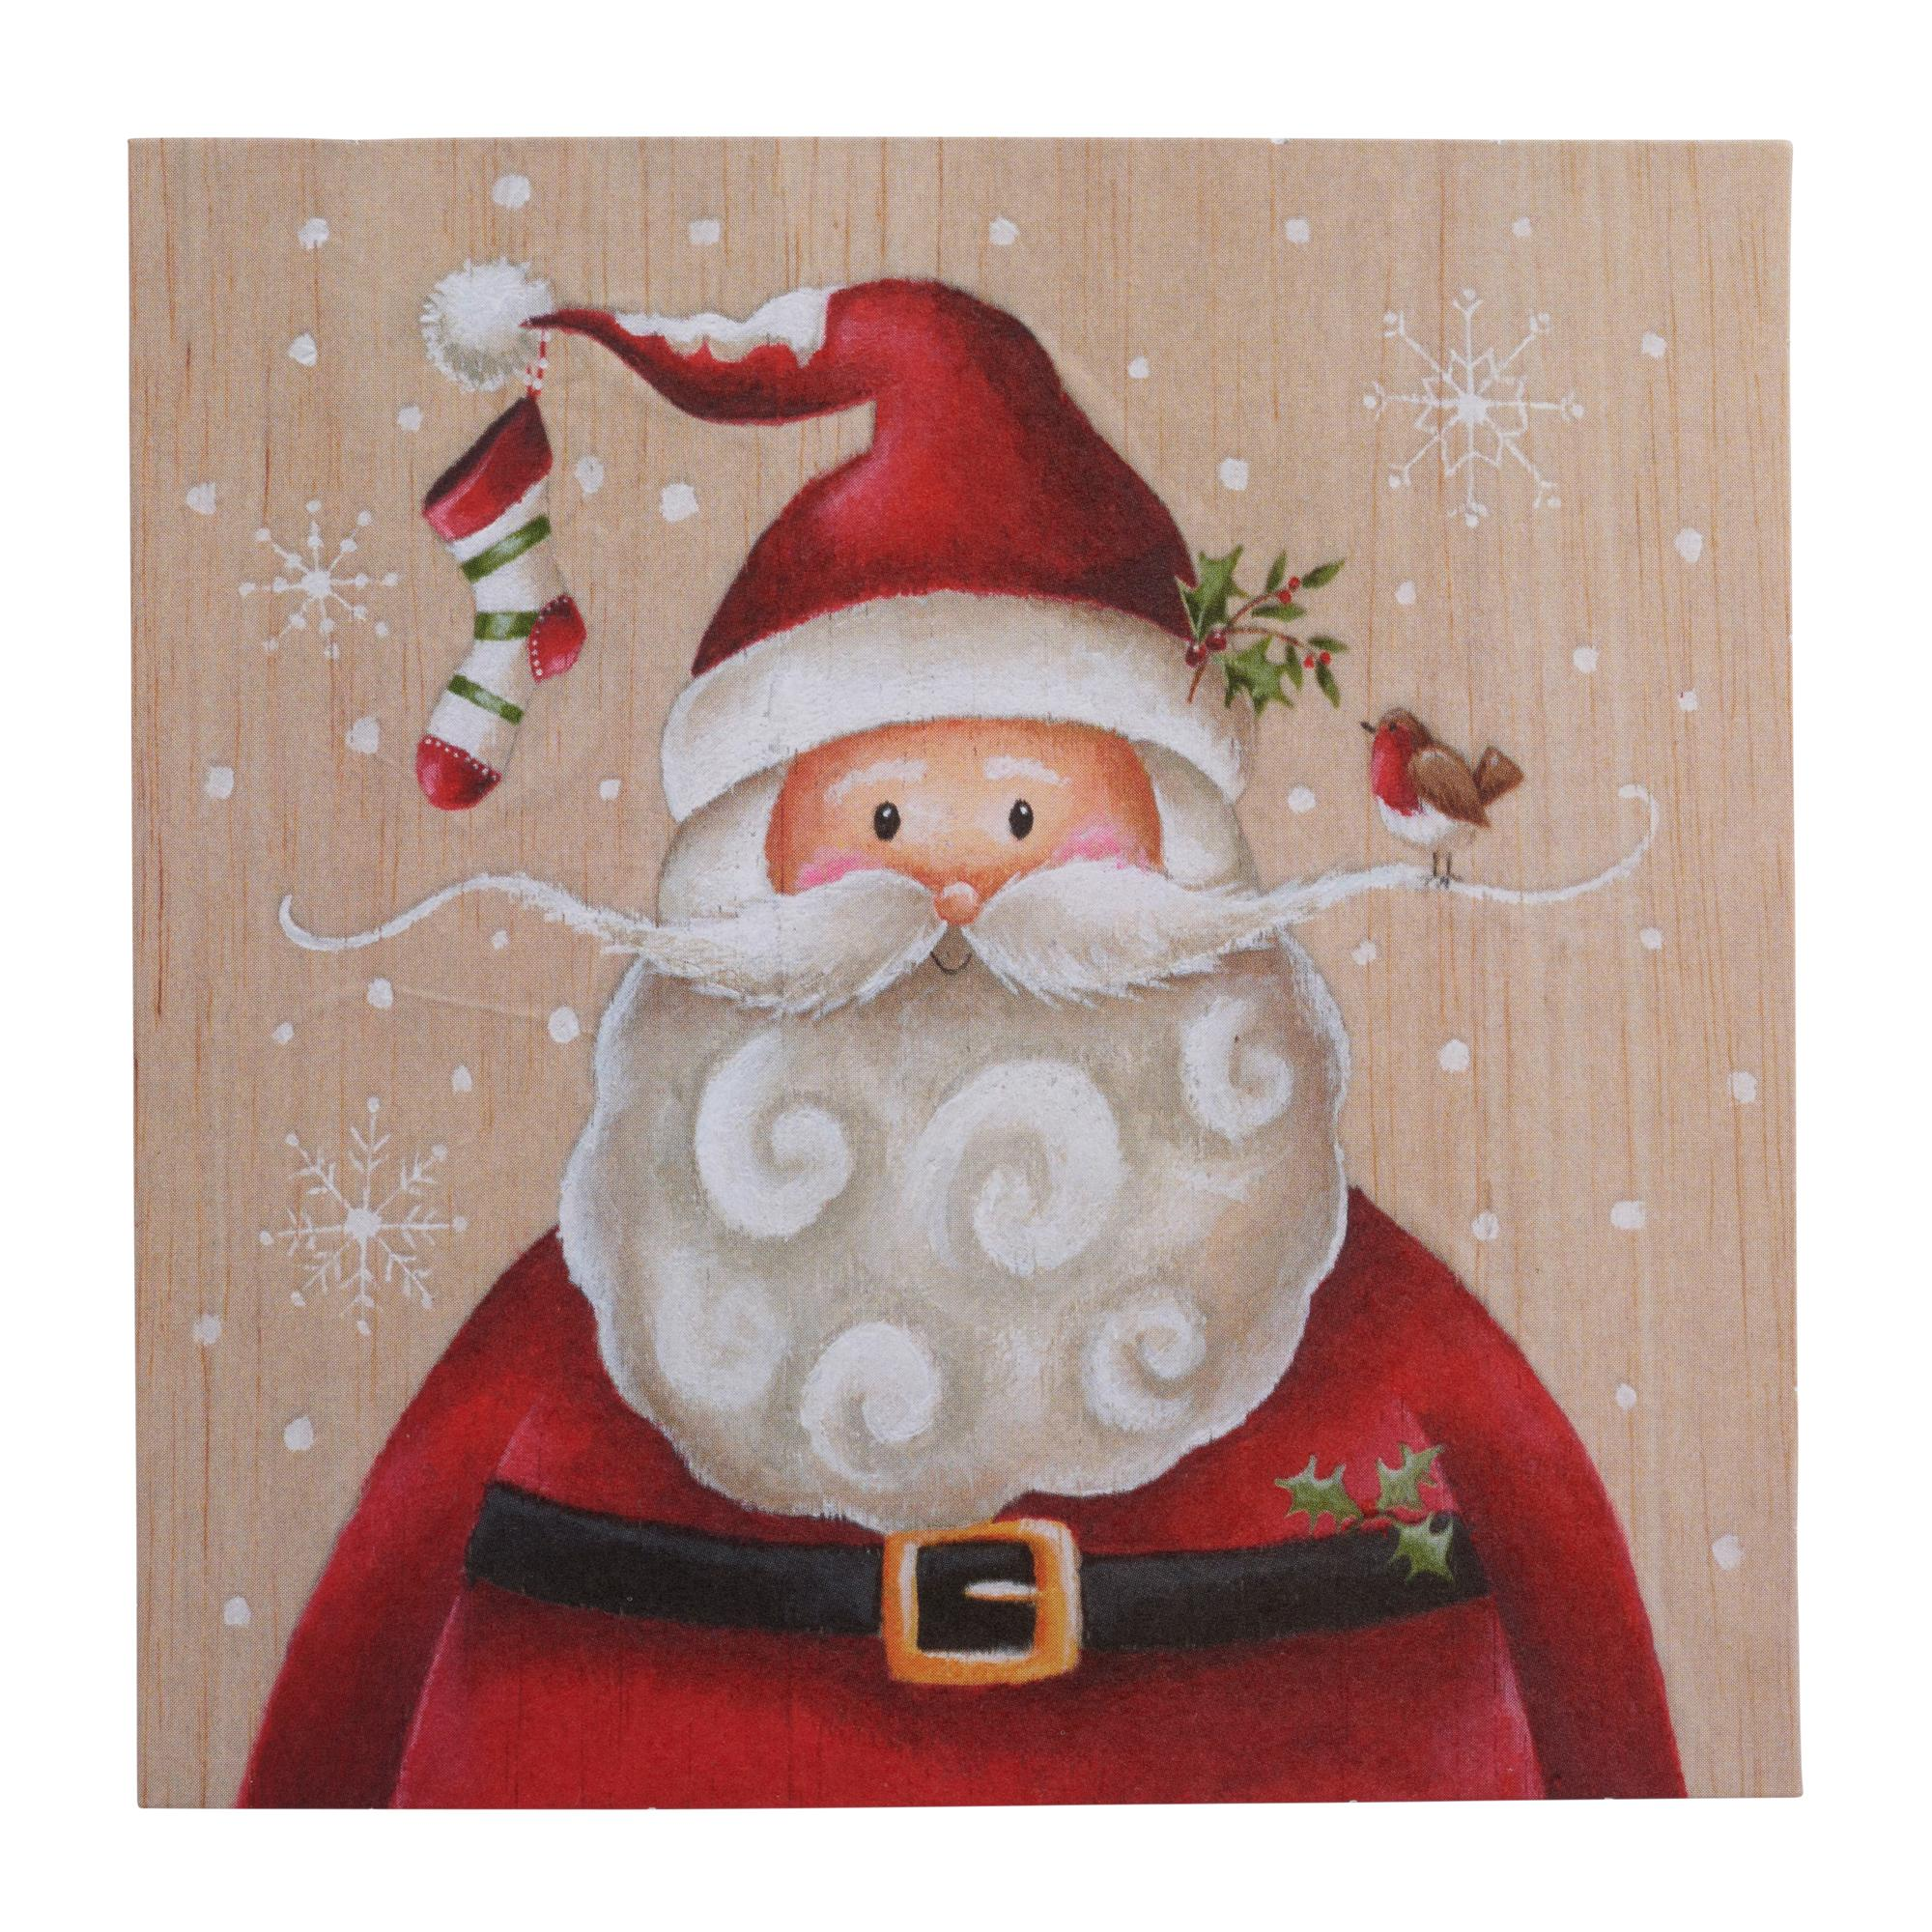 Santa And Friends Christmas Cards - Pack of 20 | Cancer Research UK ...